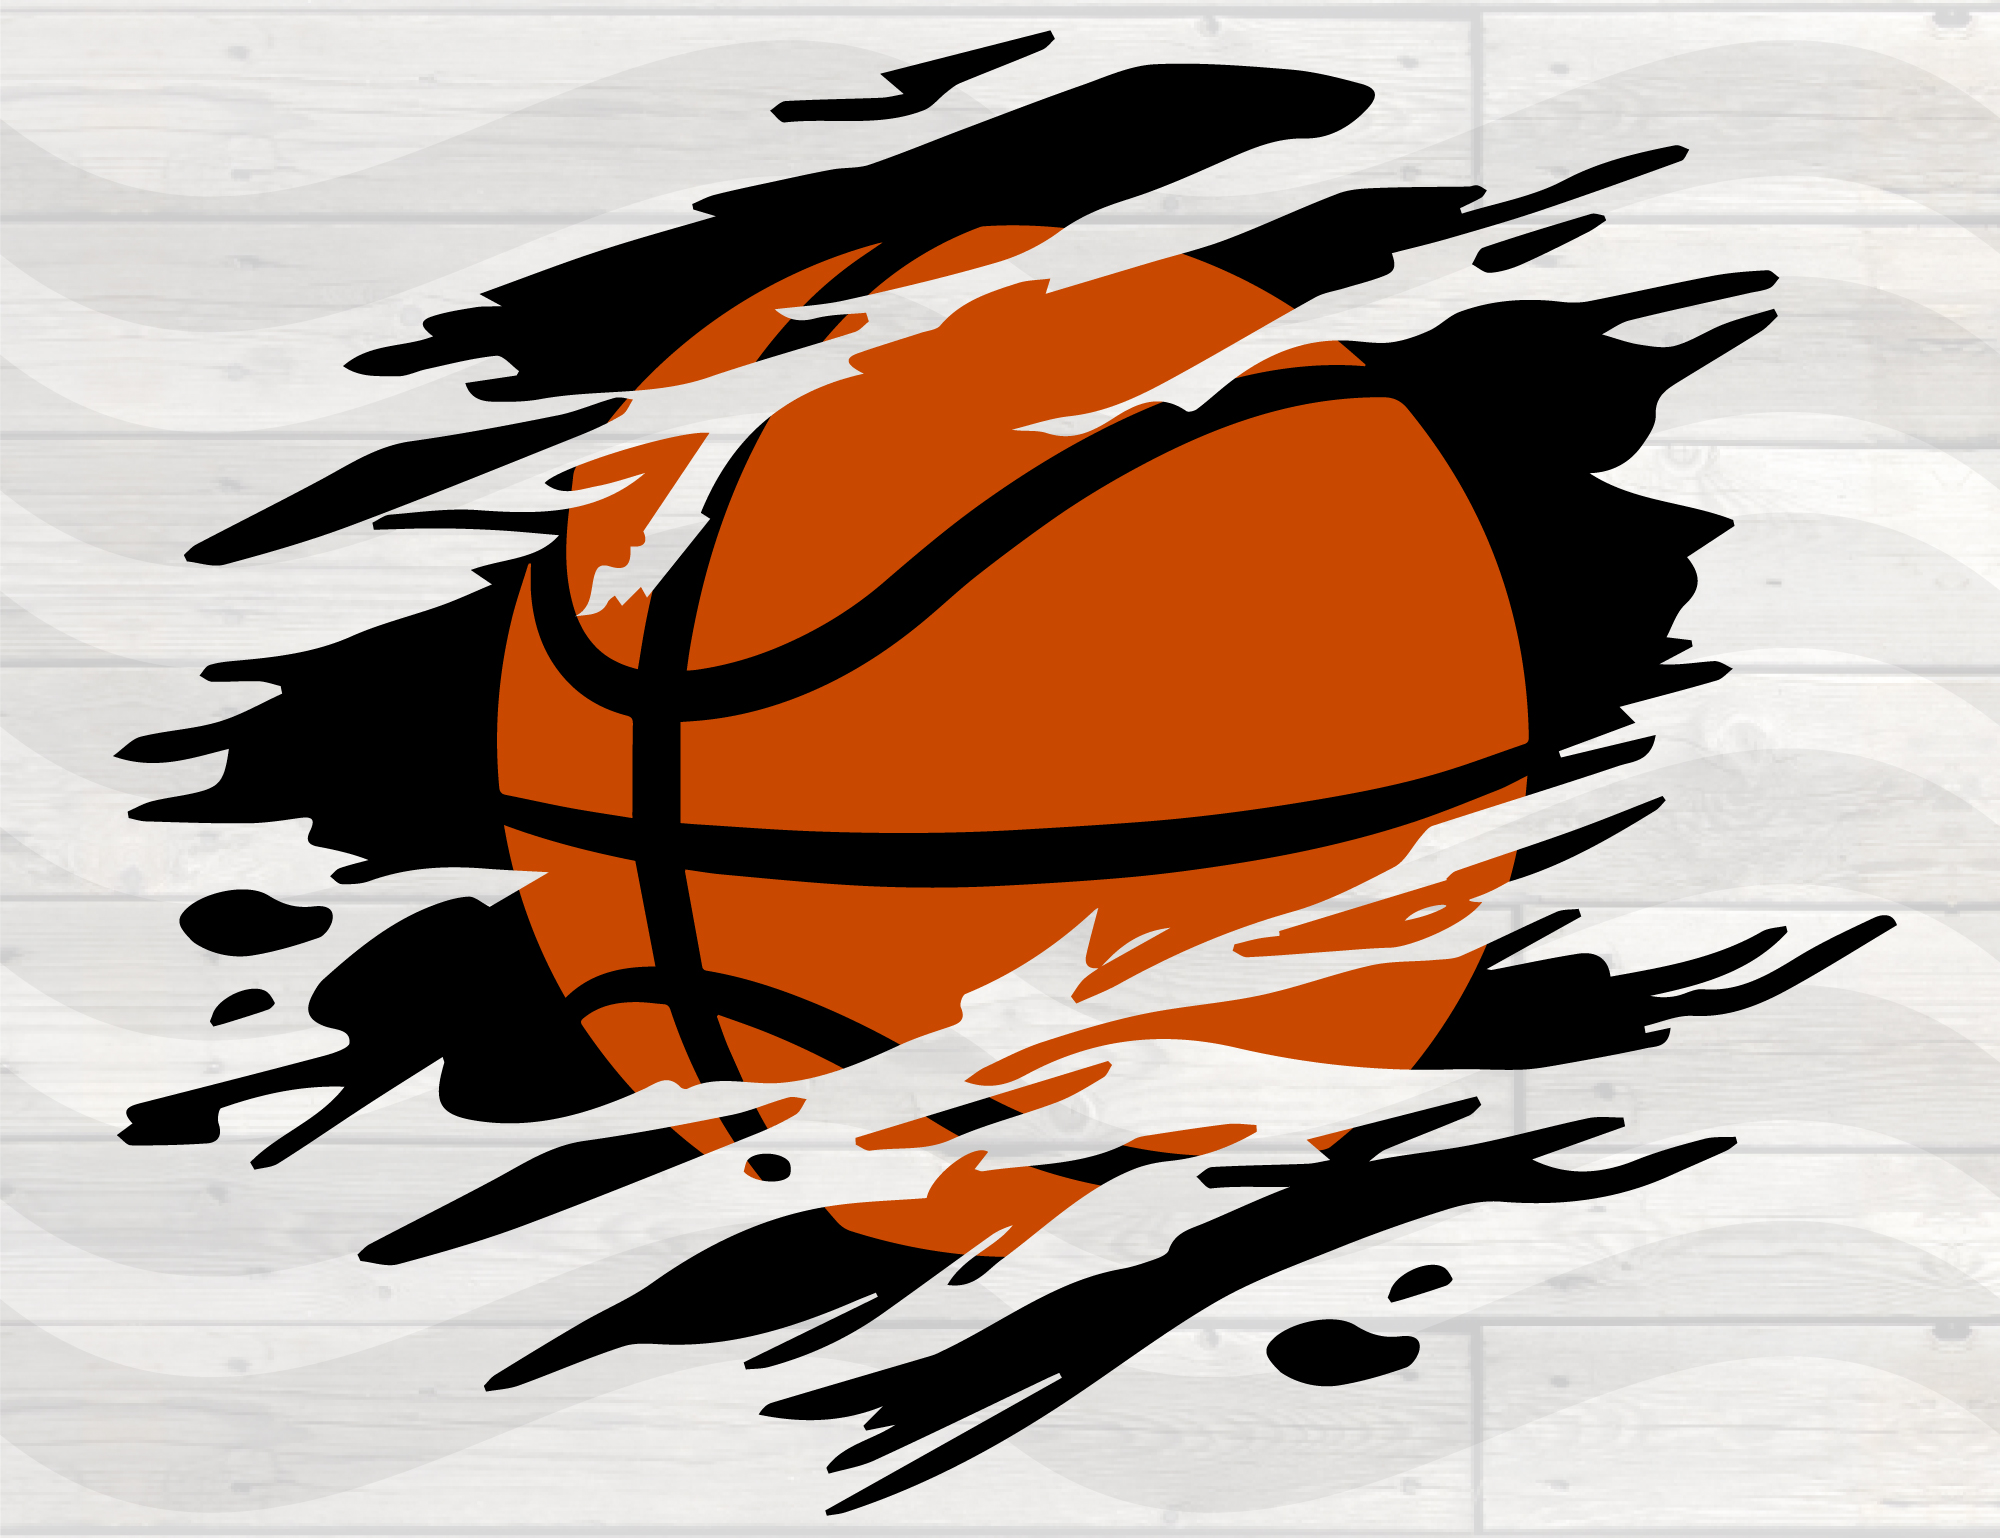 Download Free Basketball Distressed Torn Grunge Graphic By Nicetomeetyou for Cricut Explore, Silhouette and other cutting machines.